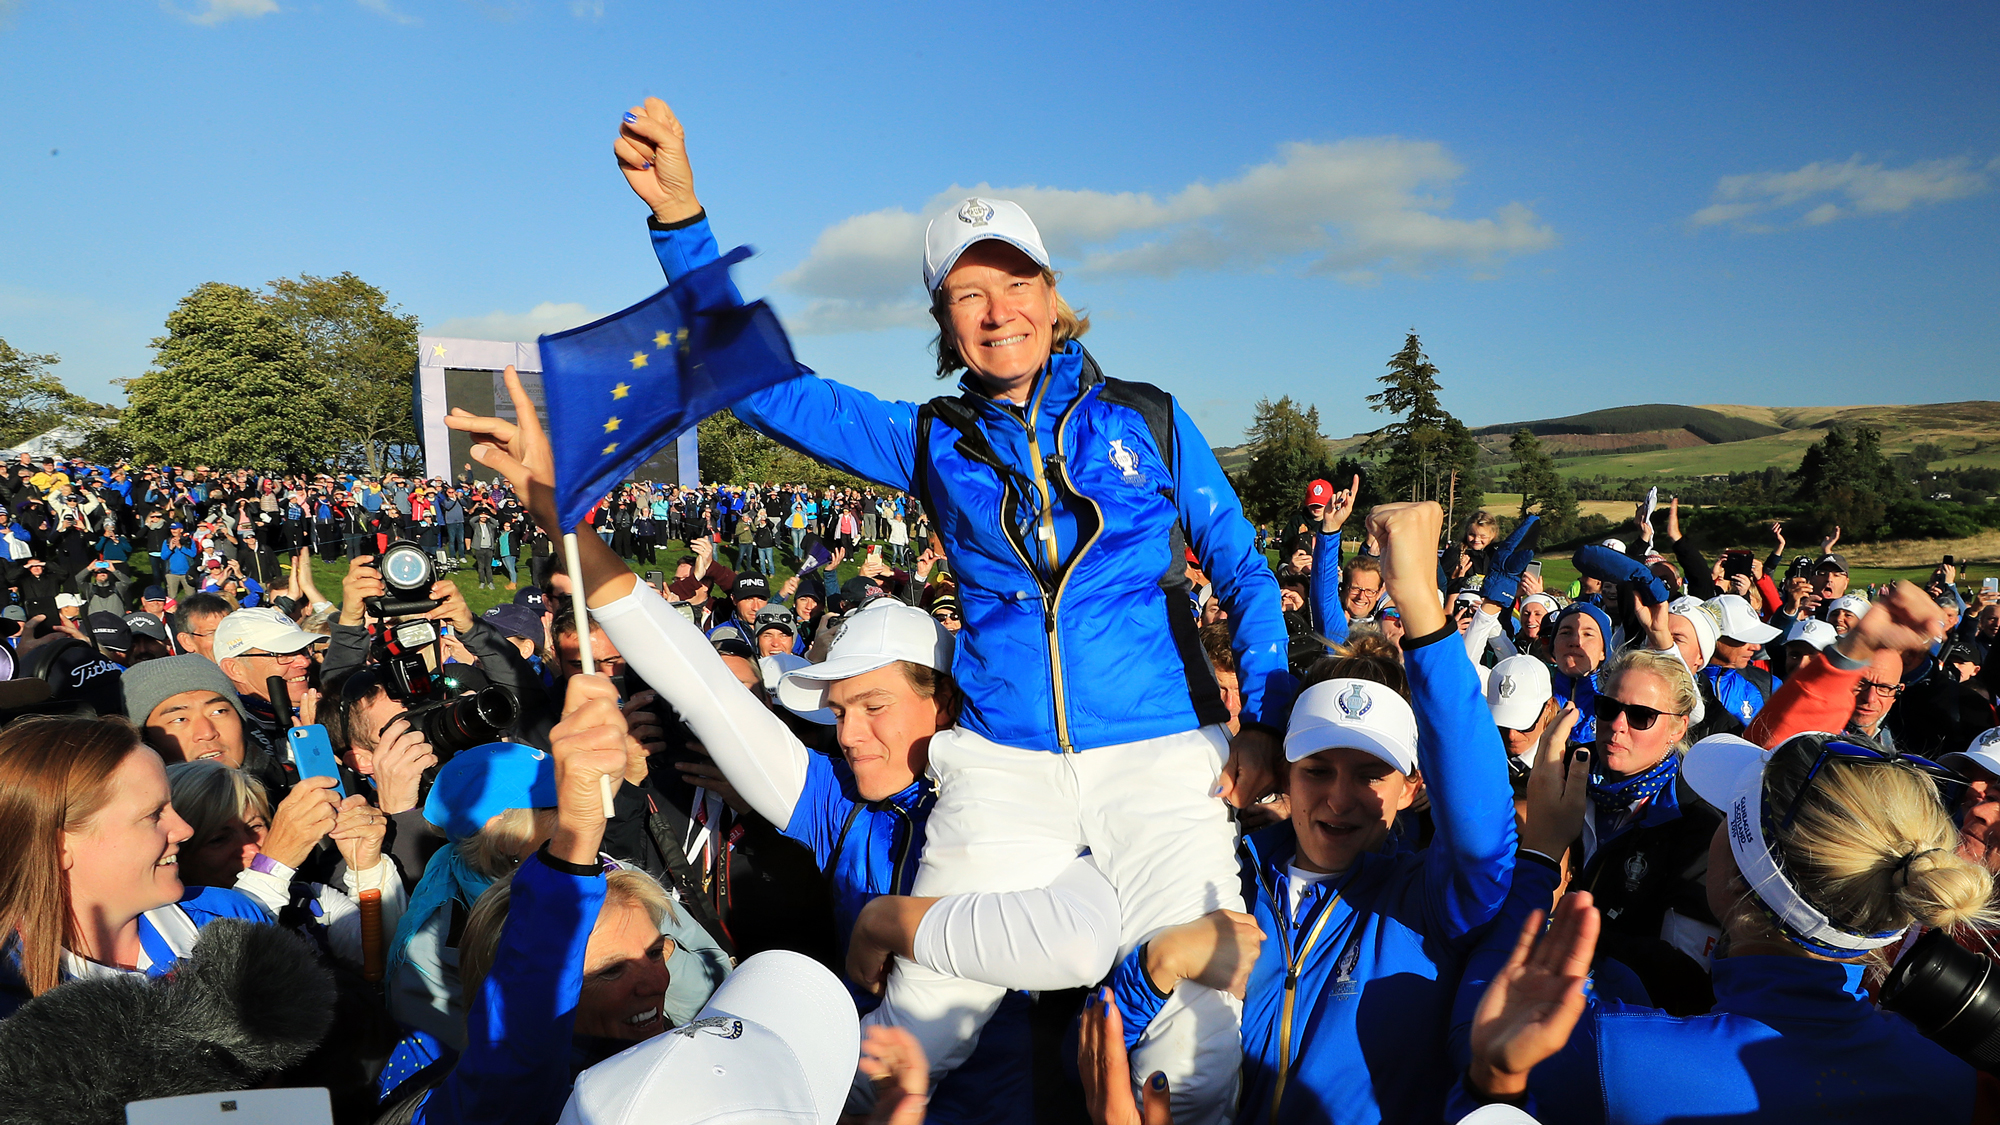 Thrilled and Honored to Captain Team Europe Again | LPGA | Ladies Professional Golf Association